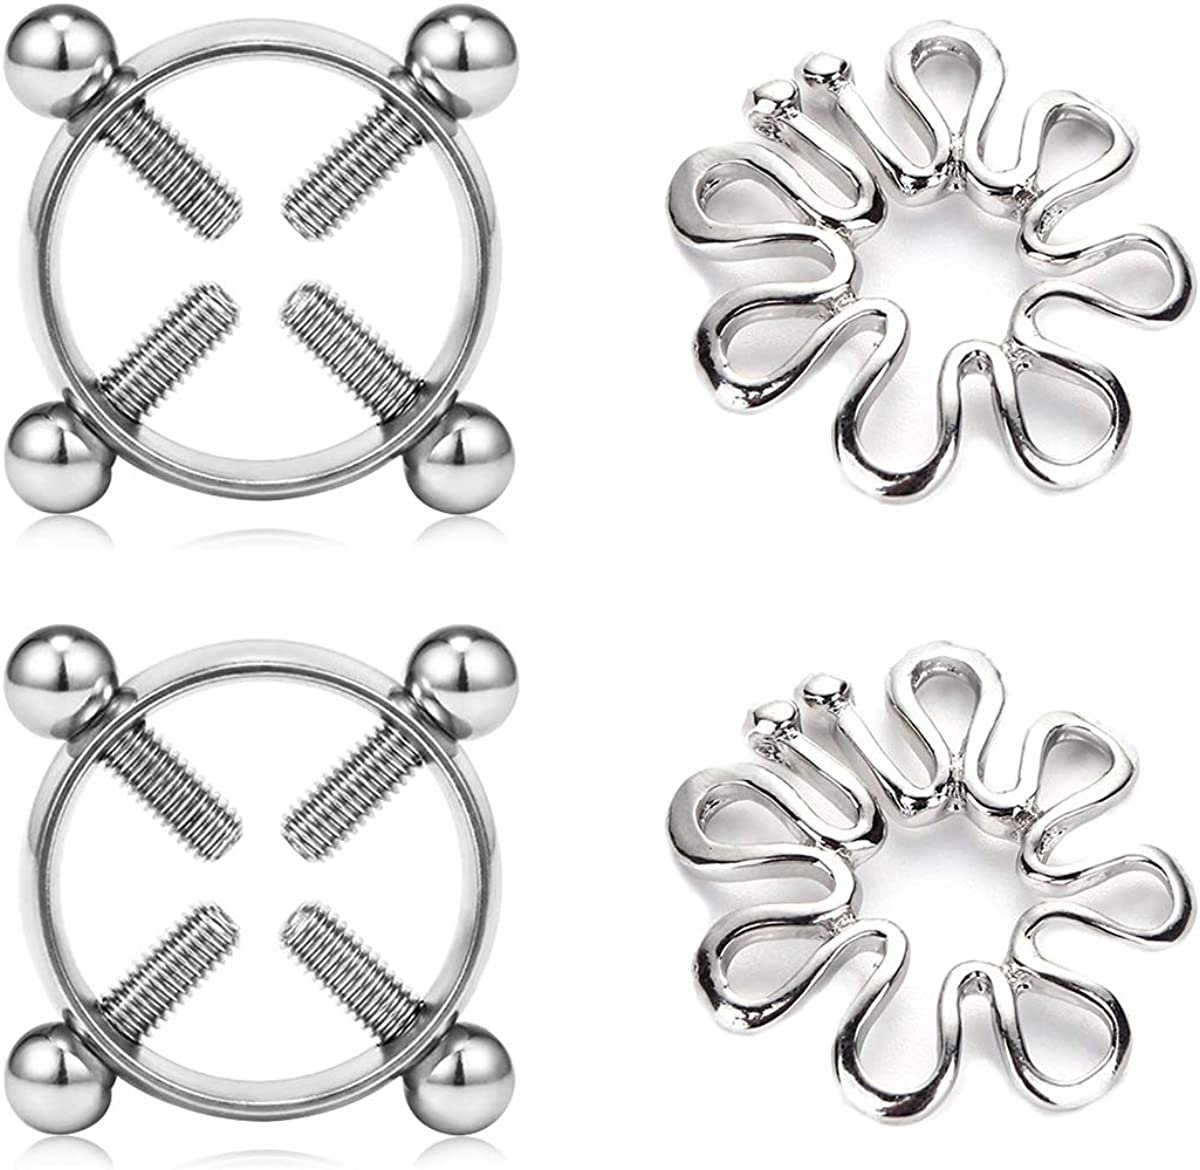 Adjustable Stainless Steel Faux Jewelry Screw Clip on Body Piercing Rings Nippl/é Clamps with Metal Chain for Party 55ghk